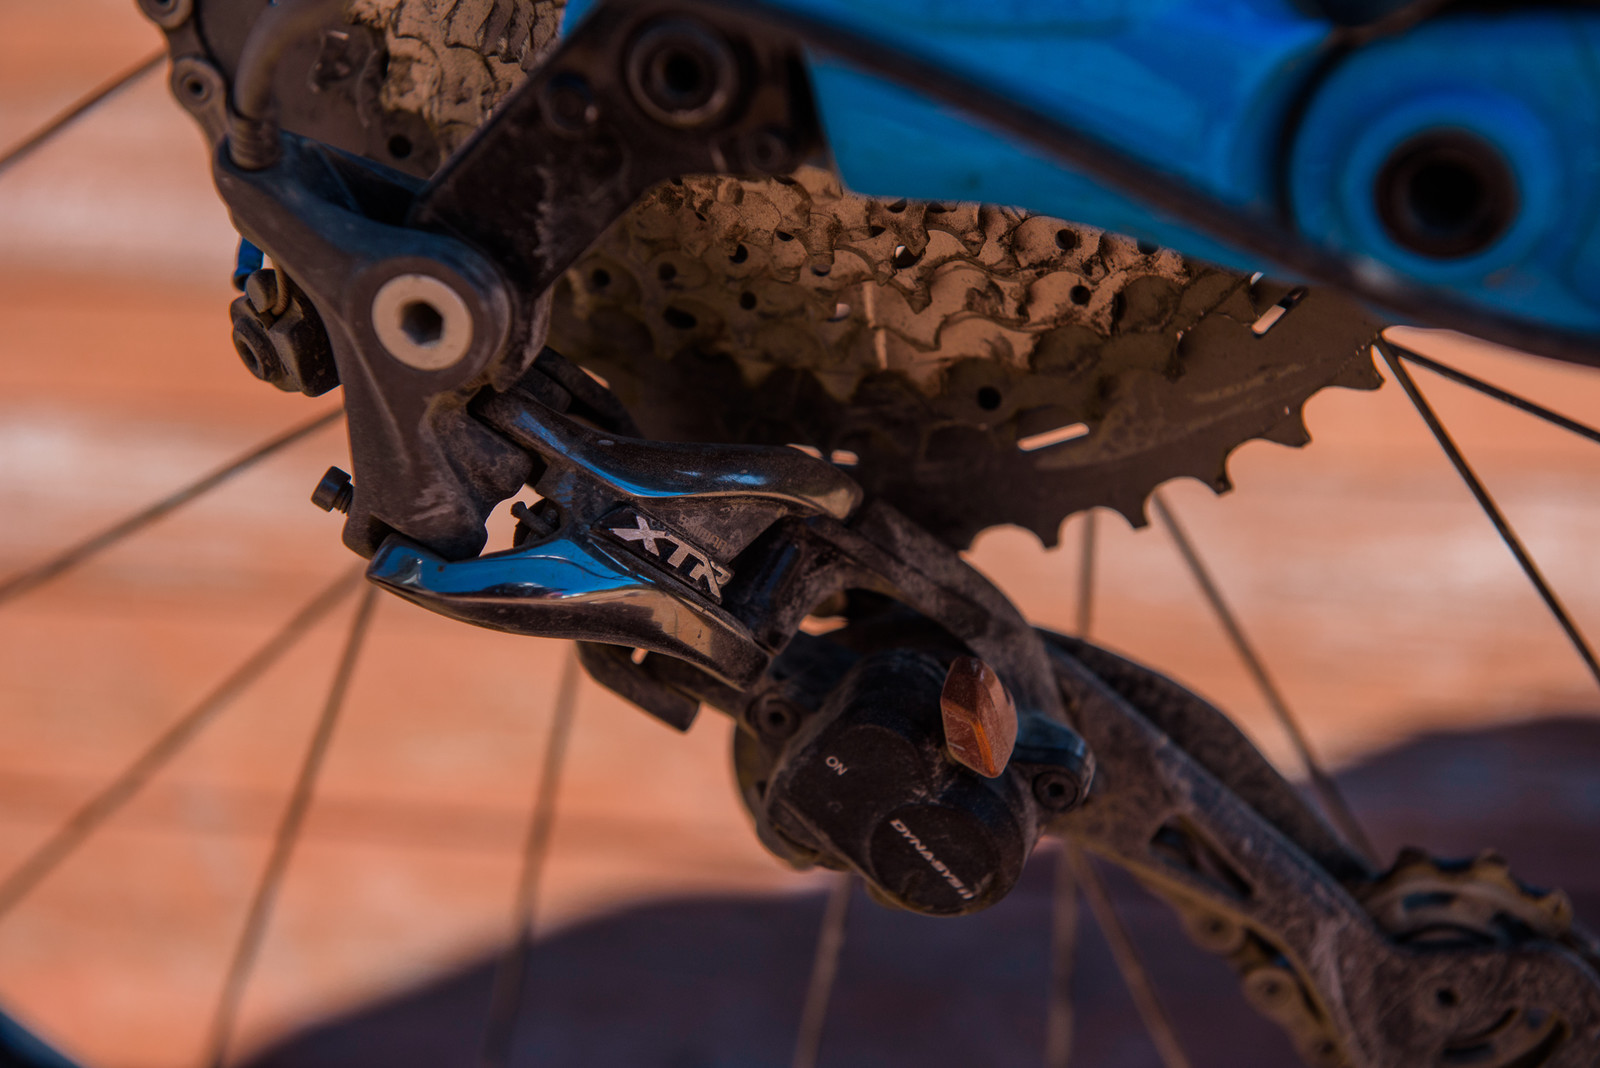 Shimano XTR Rear Derailleur - Pro Bike - Wyn Masters' GT Force, Size XL - Mountain Biking Pictures - Vital MTB